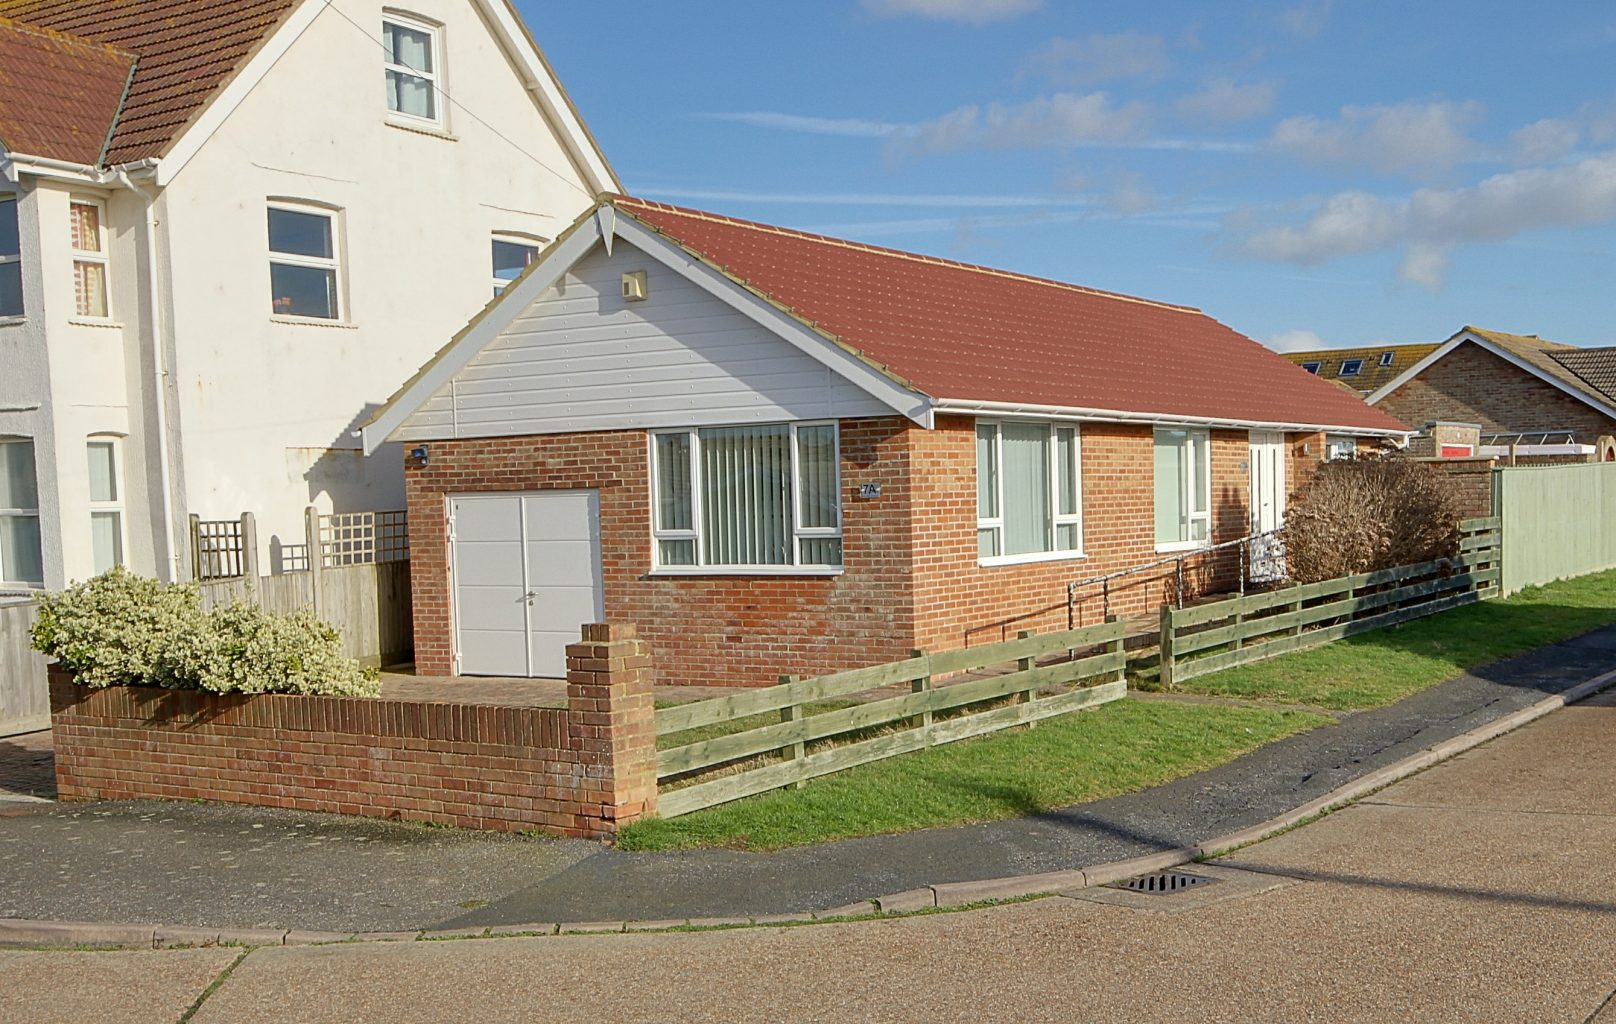 Image of the outside of a detached bungalow in Peacehaven | Open House Estate Agents Peacehaven